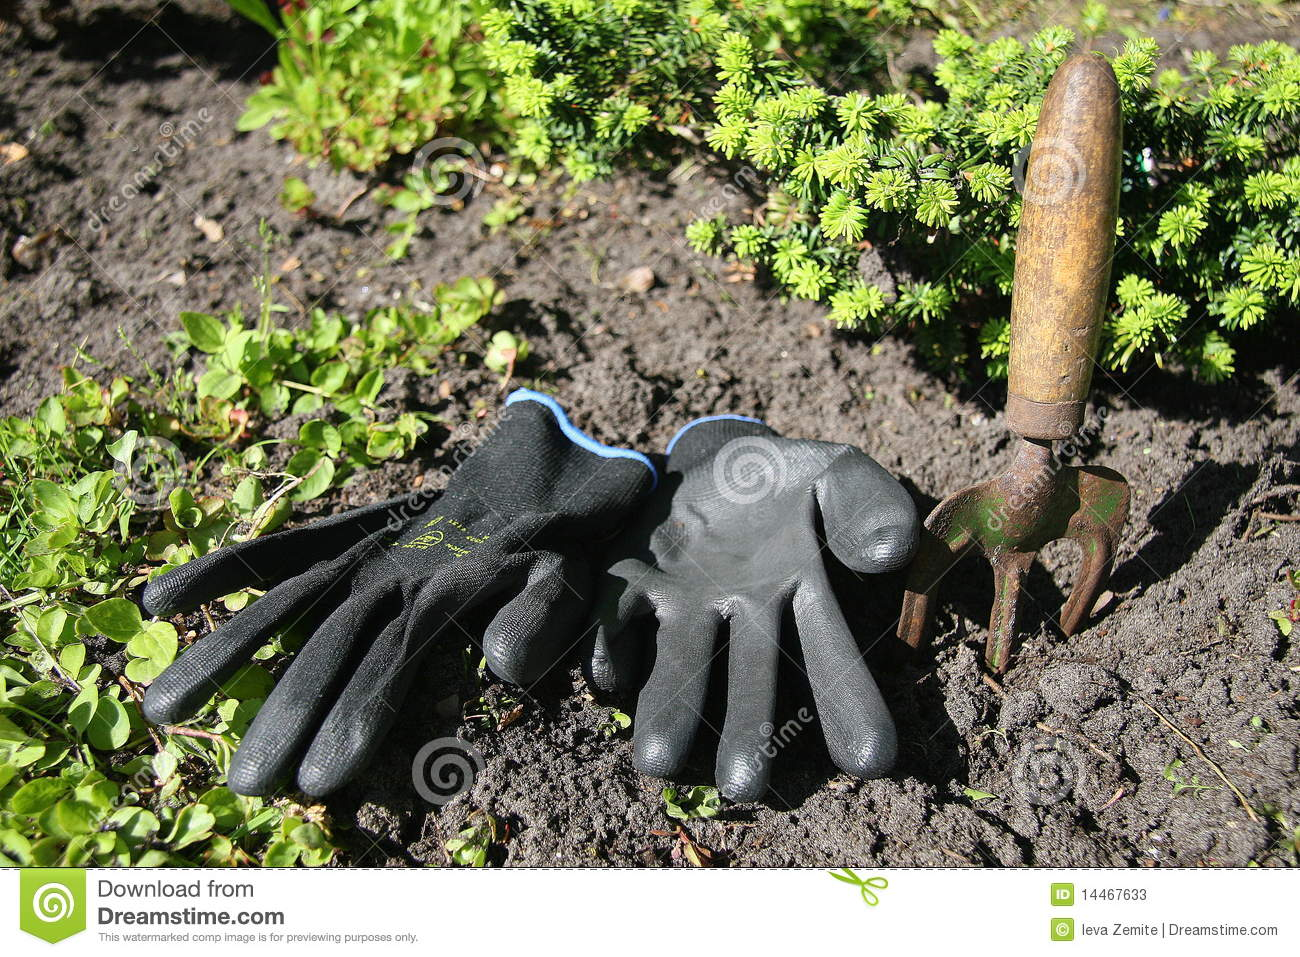 Black gardening gloves - Black Gardening Gloves Gardening Tools